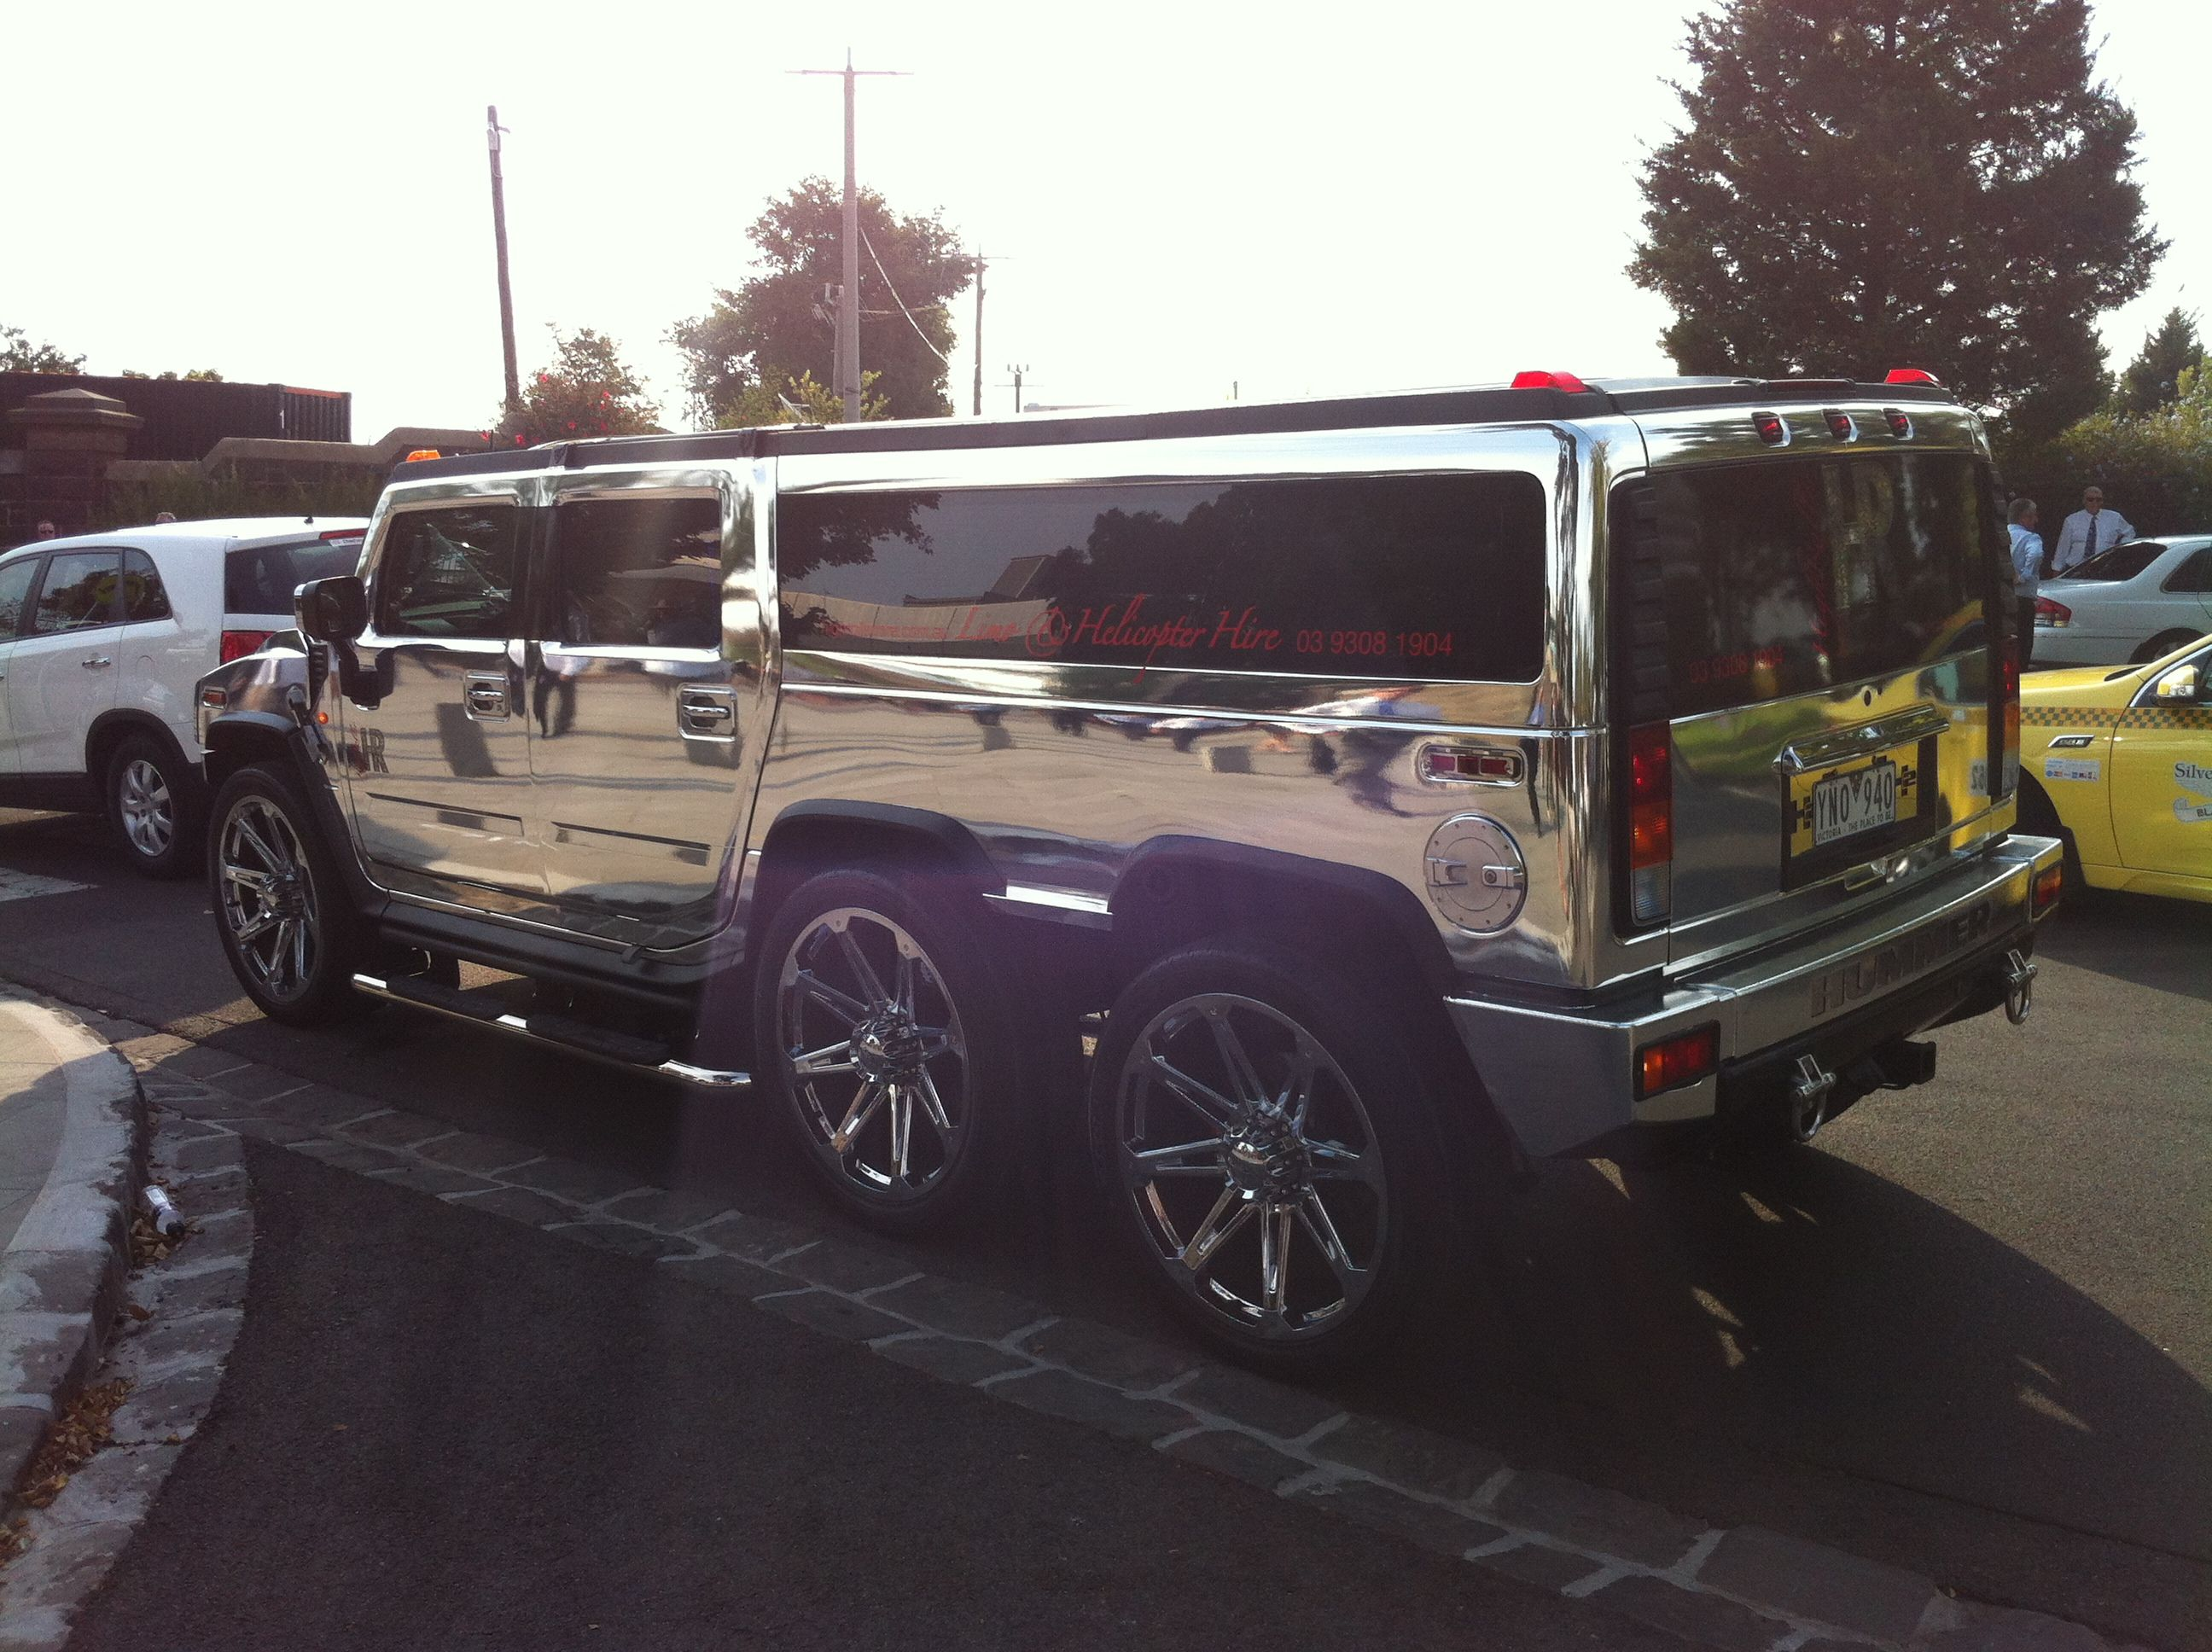 Chrome hummer limo Wedding limos SUV transportation for bride